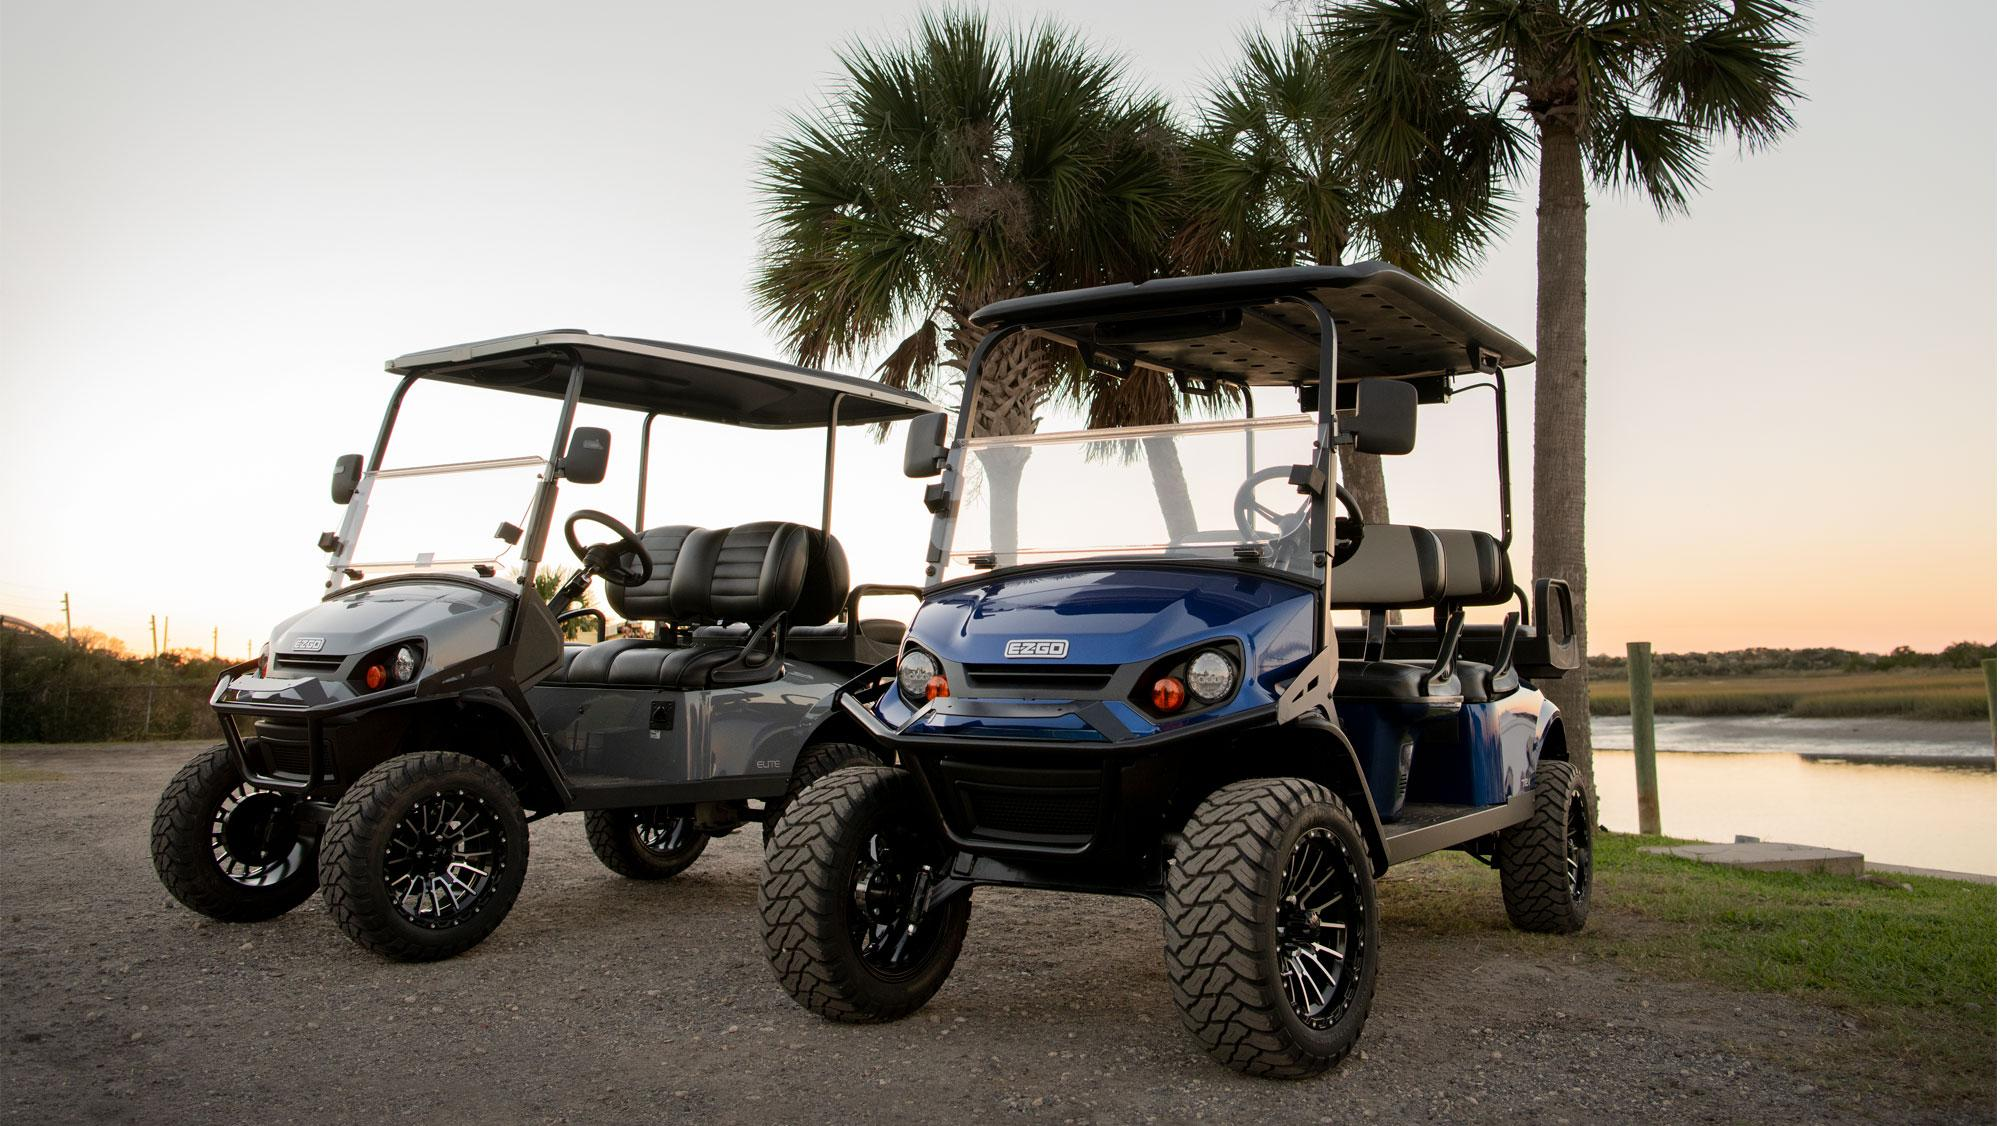 EZGO Express with wind shield top and seat accessories